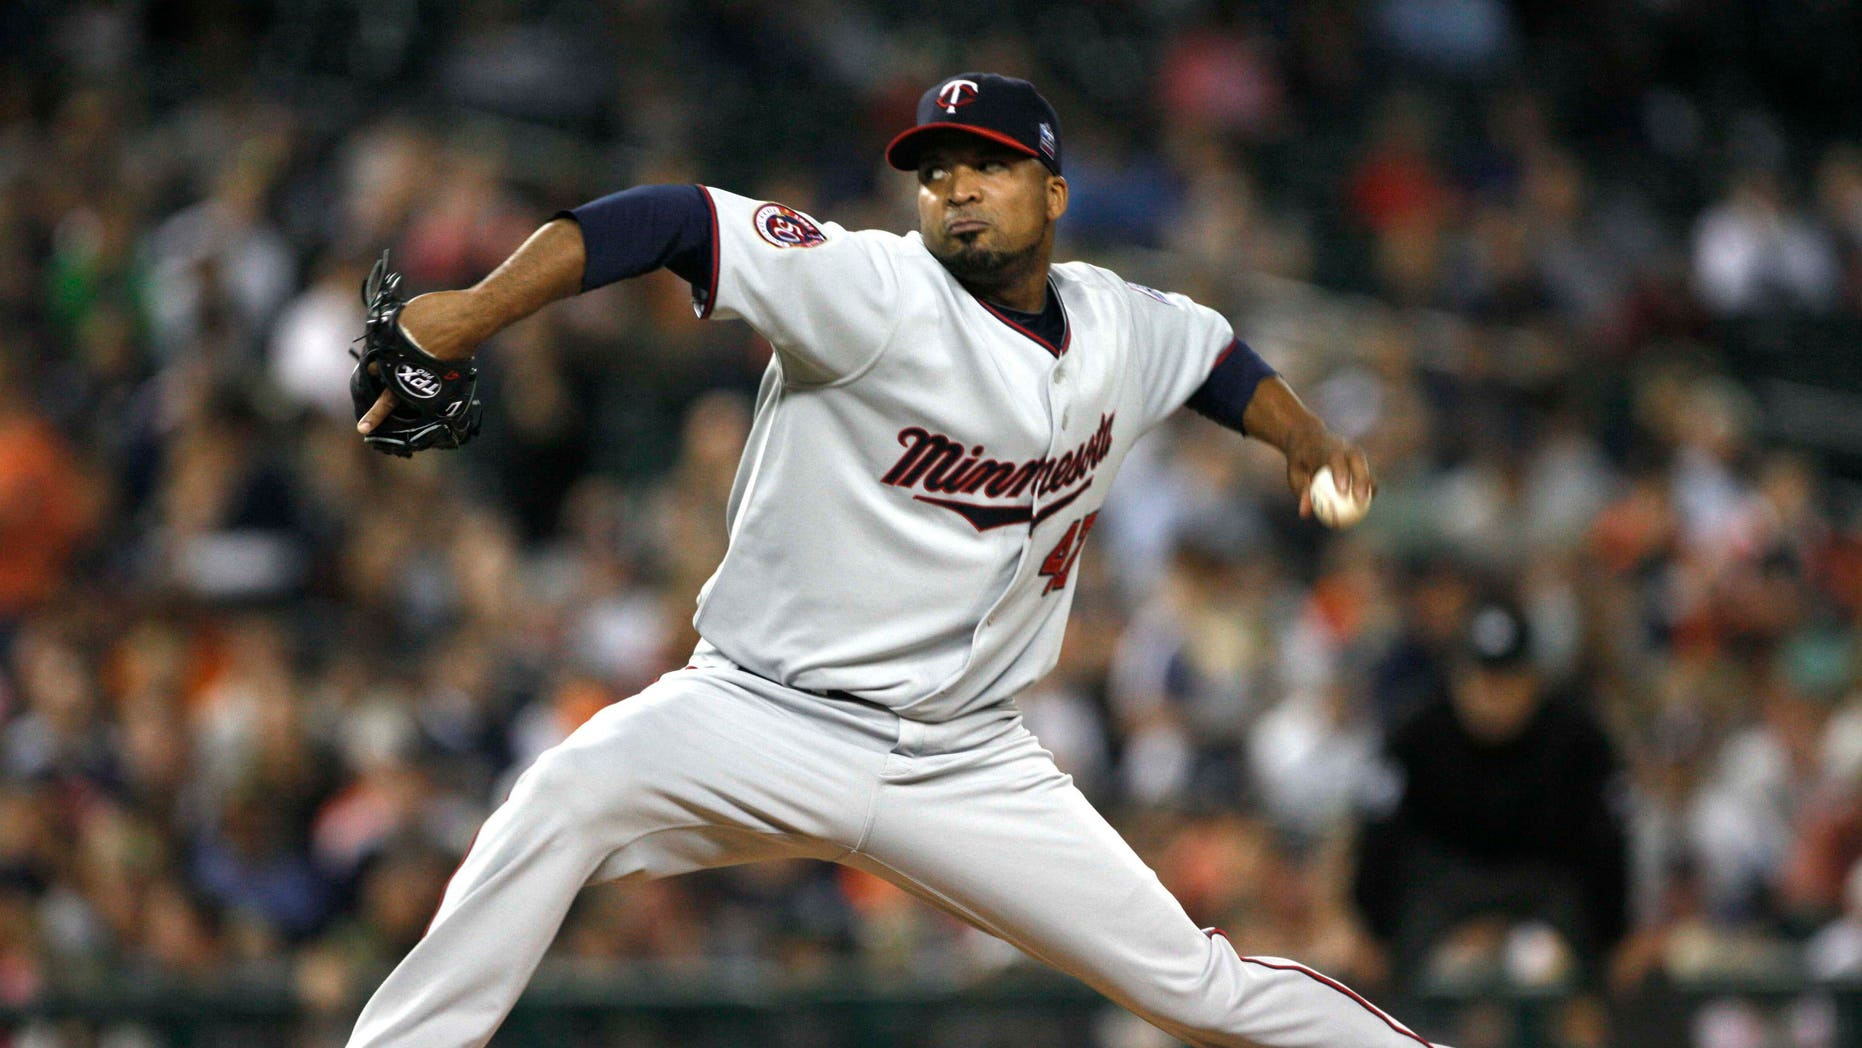 Minnesota Twins pitcher Francisco Liriano throws against the Detroit Tigers in the third inning of a baseball game in Detroit, Friday, Sept. 24, 2010. (AP Photo/Paul Sancya)